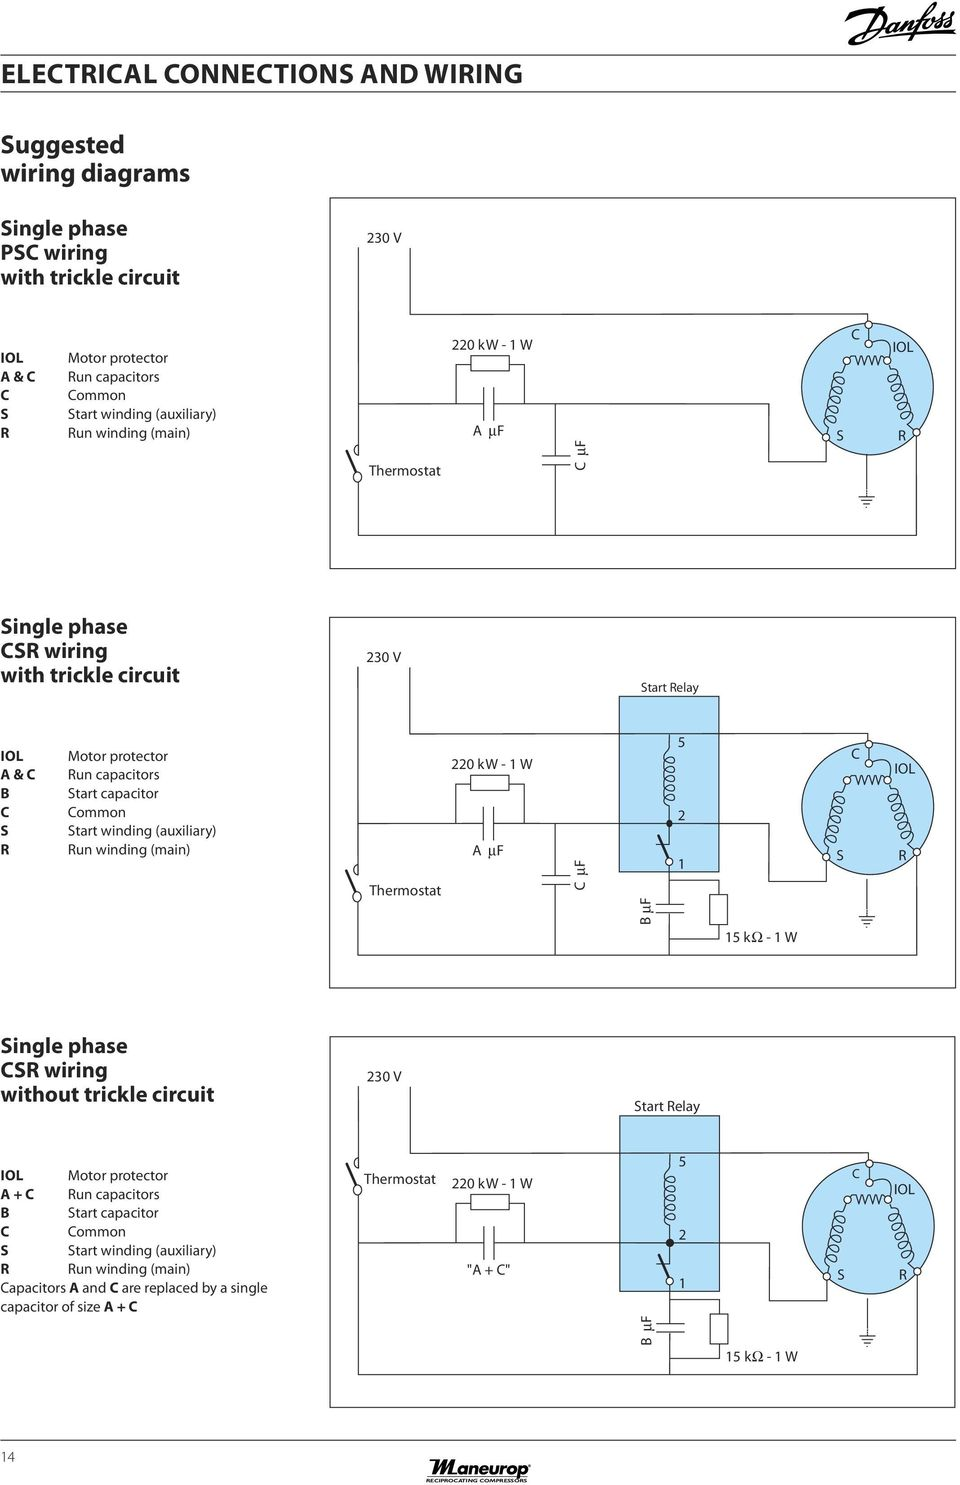 Rotor And Stator Single Phase Motor Wiring Diagrams Diagram Reciprocating Compressors Mt Mtz Hz Pdf Compressor